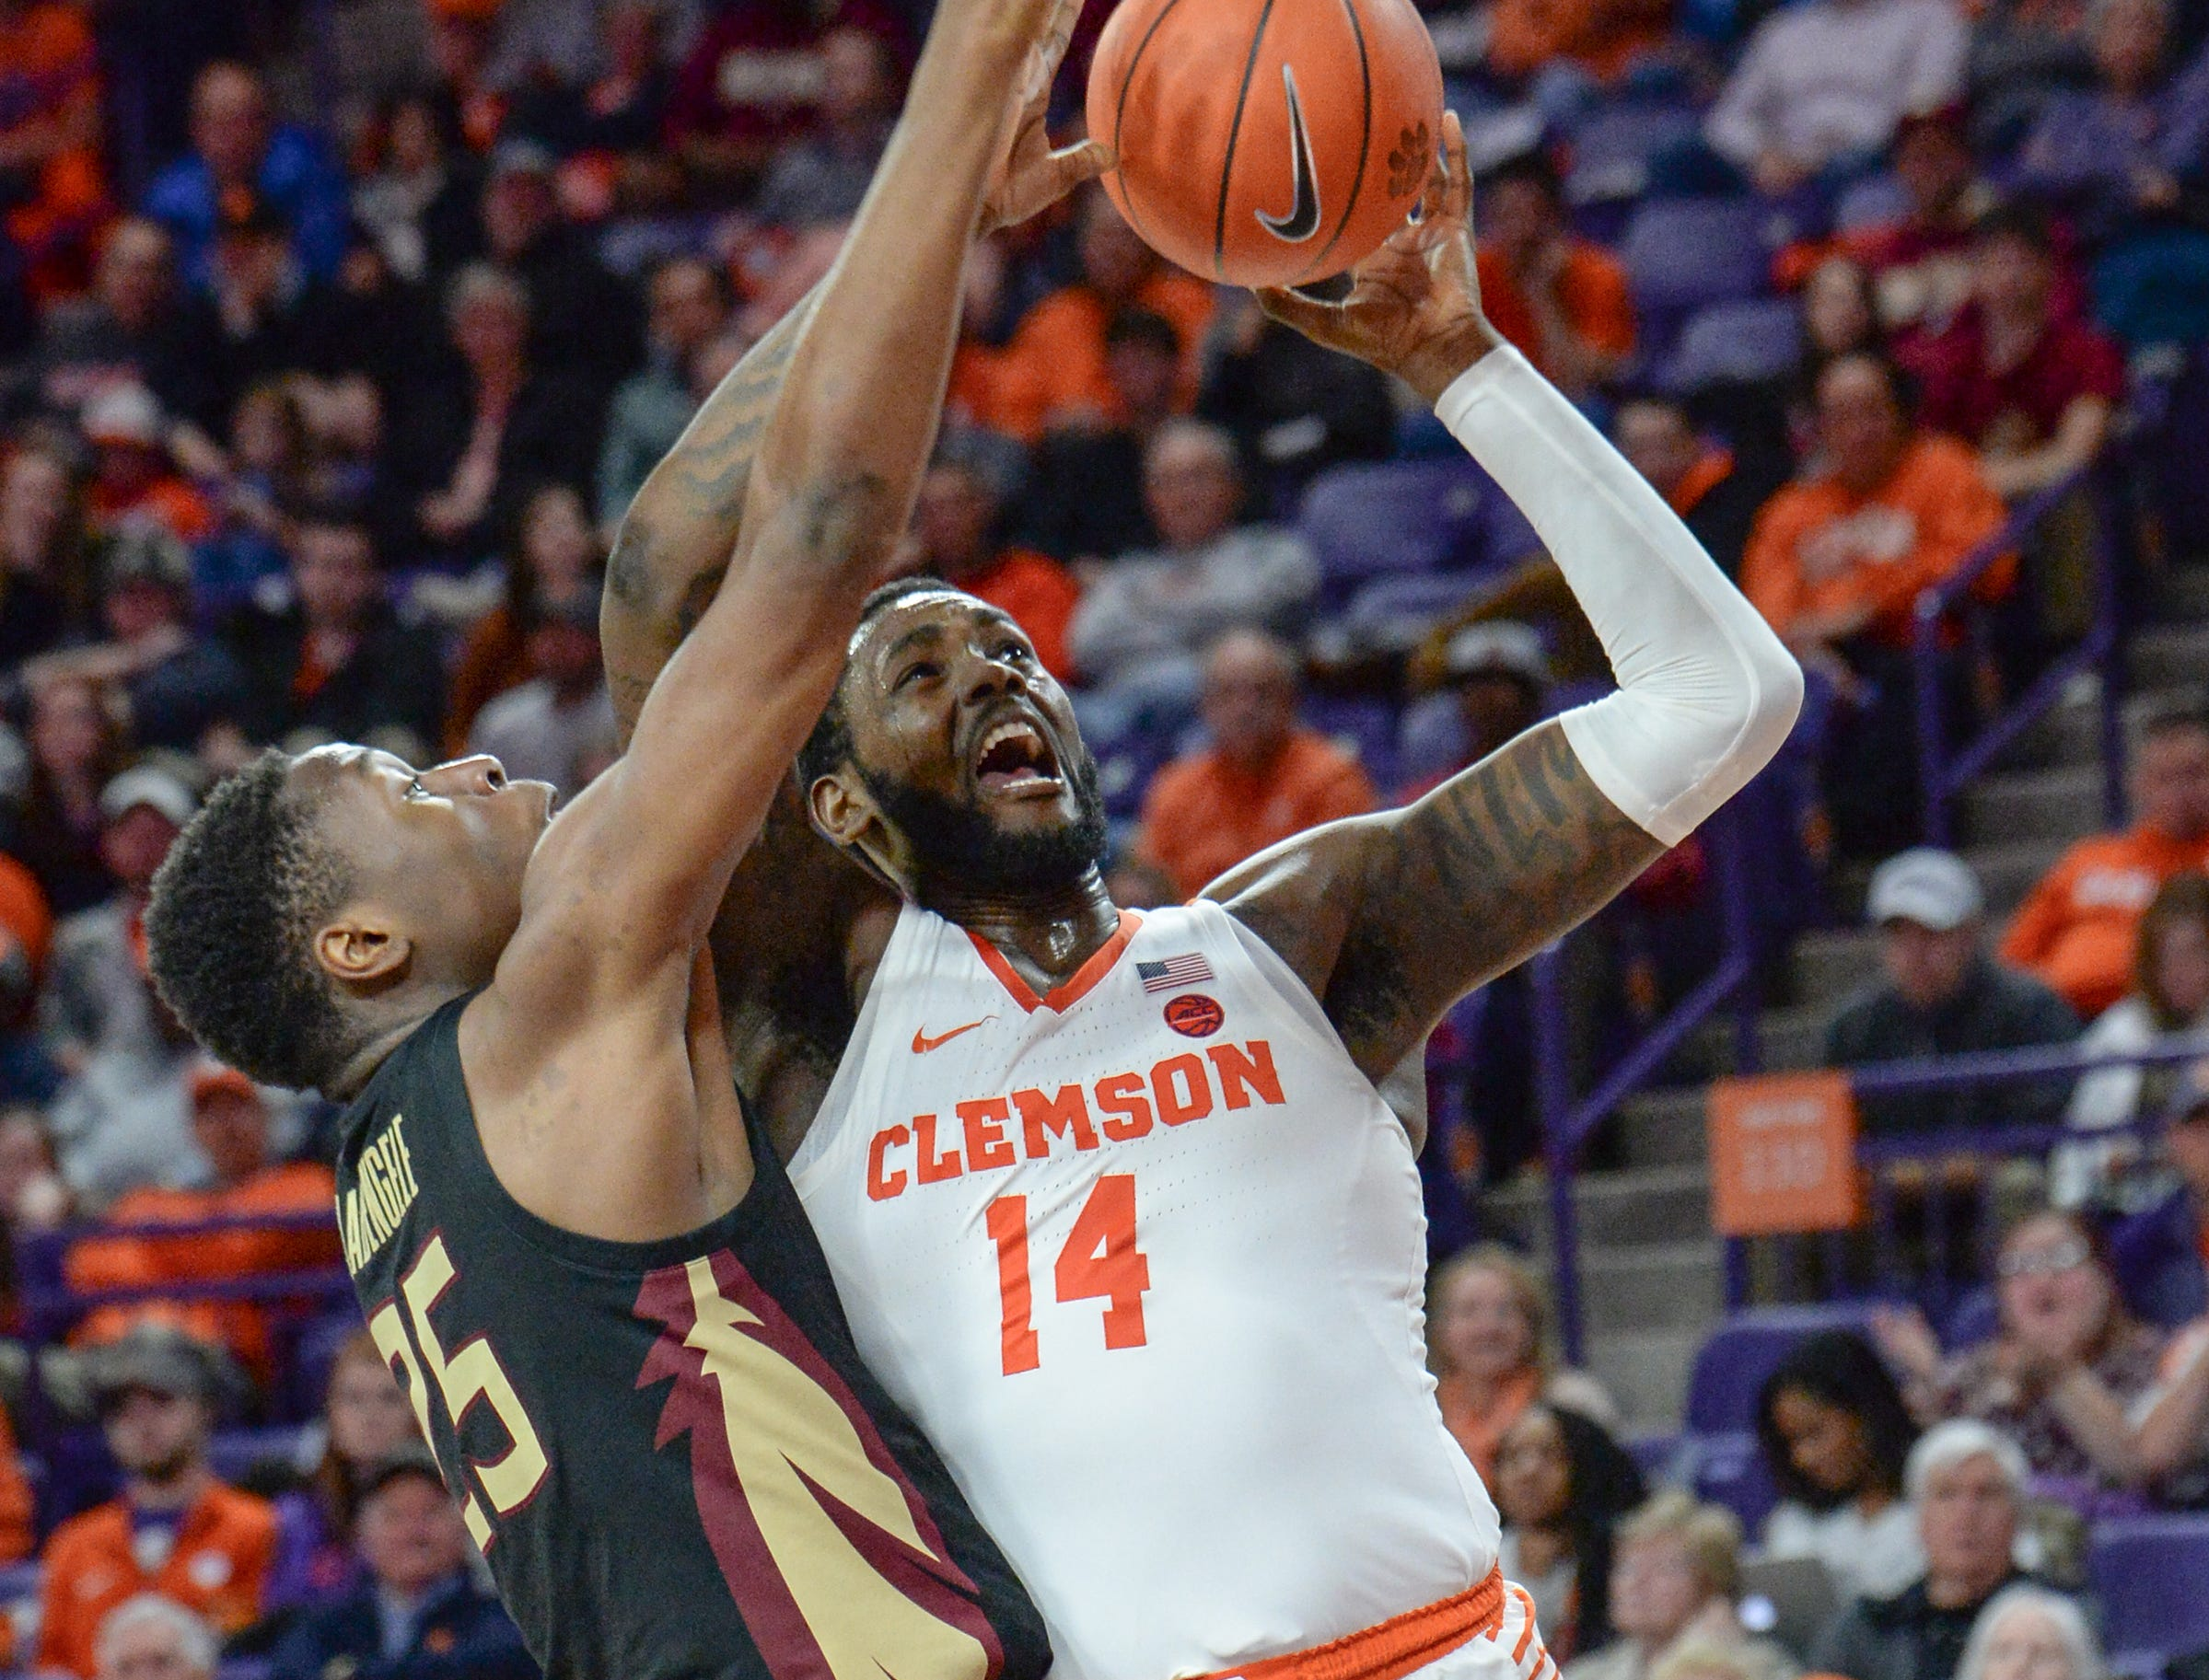 Clemson forward Elijah Thomas (14) shoots near Florida State forward Mfiondu Kabengele(25) during the second half at Littlejohn Coliseum in Clemson Tuesday, February 19, 2019.